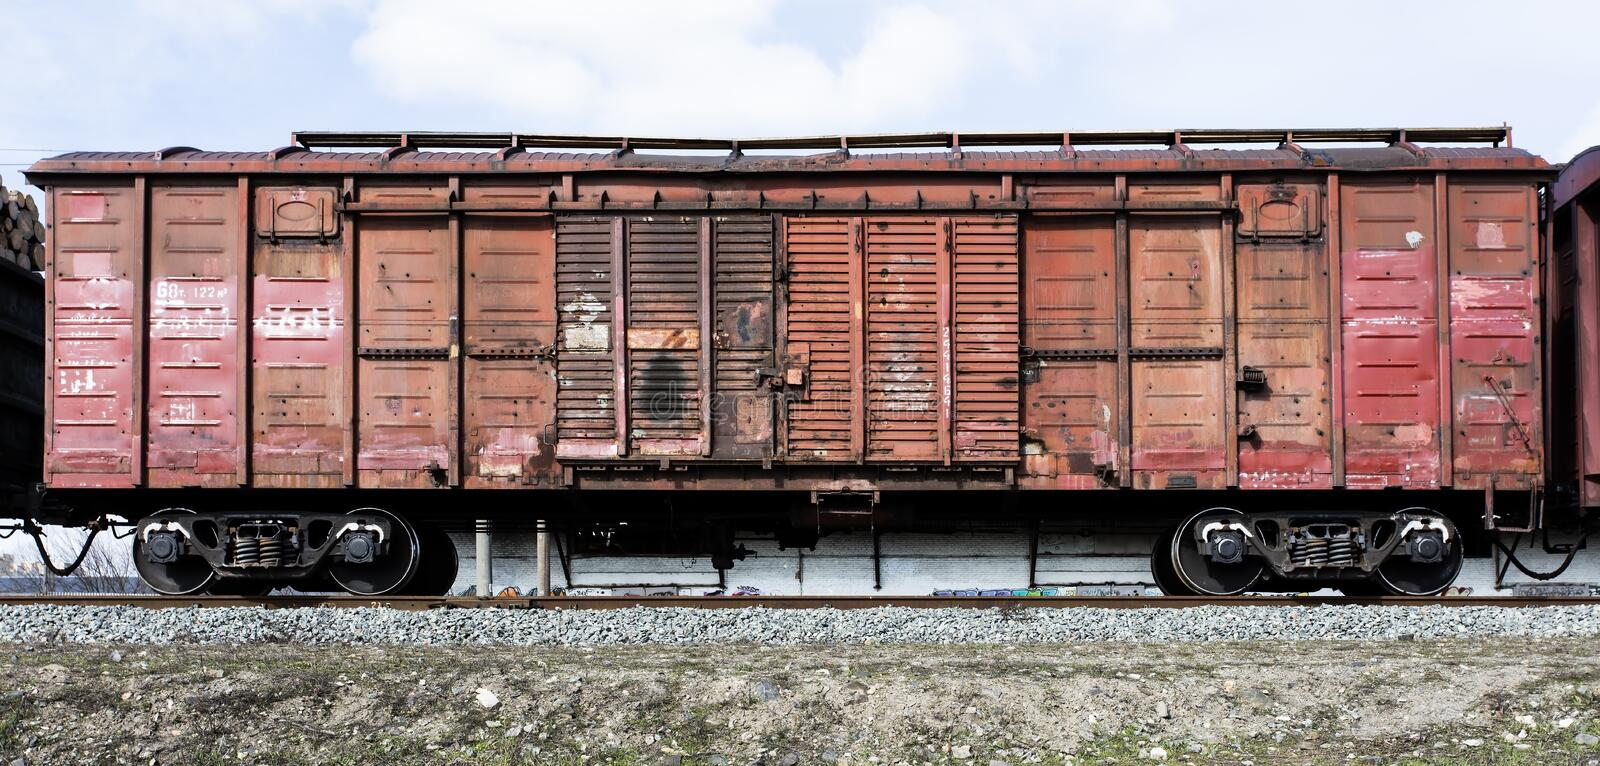 Railway freight wagon royalty free stock images